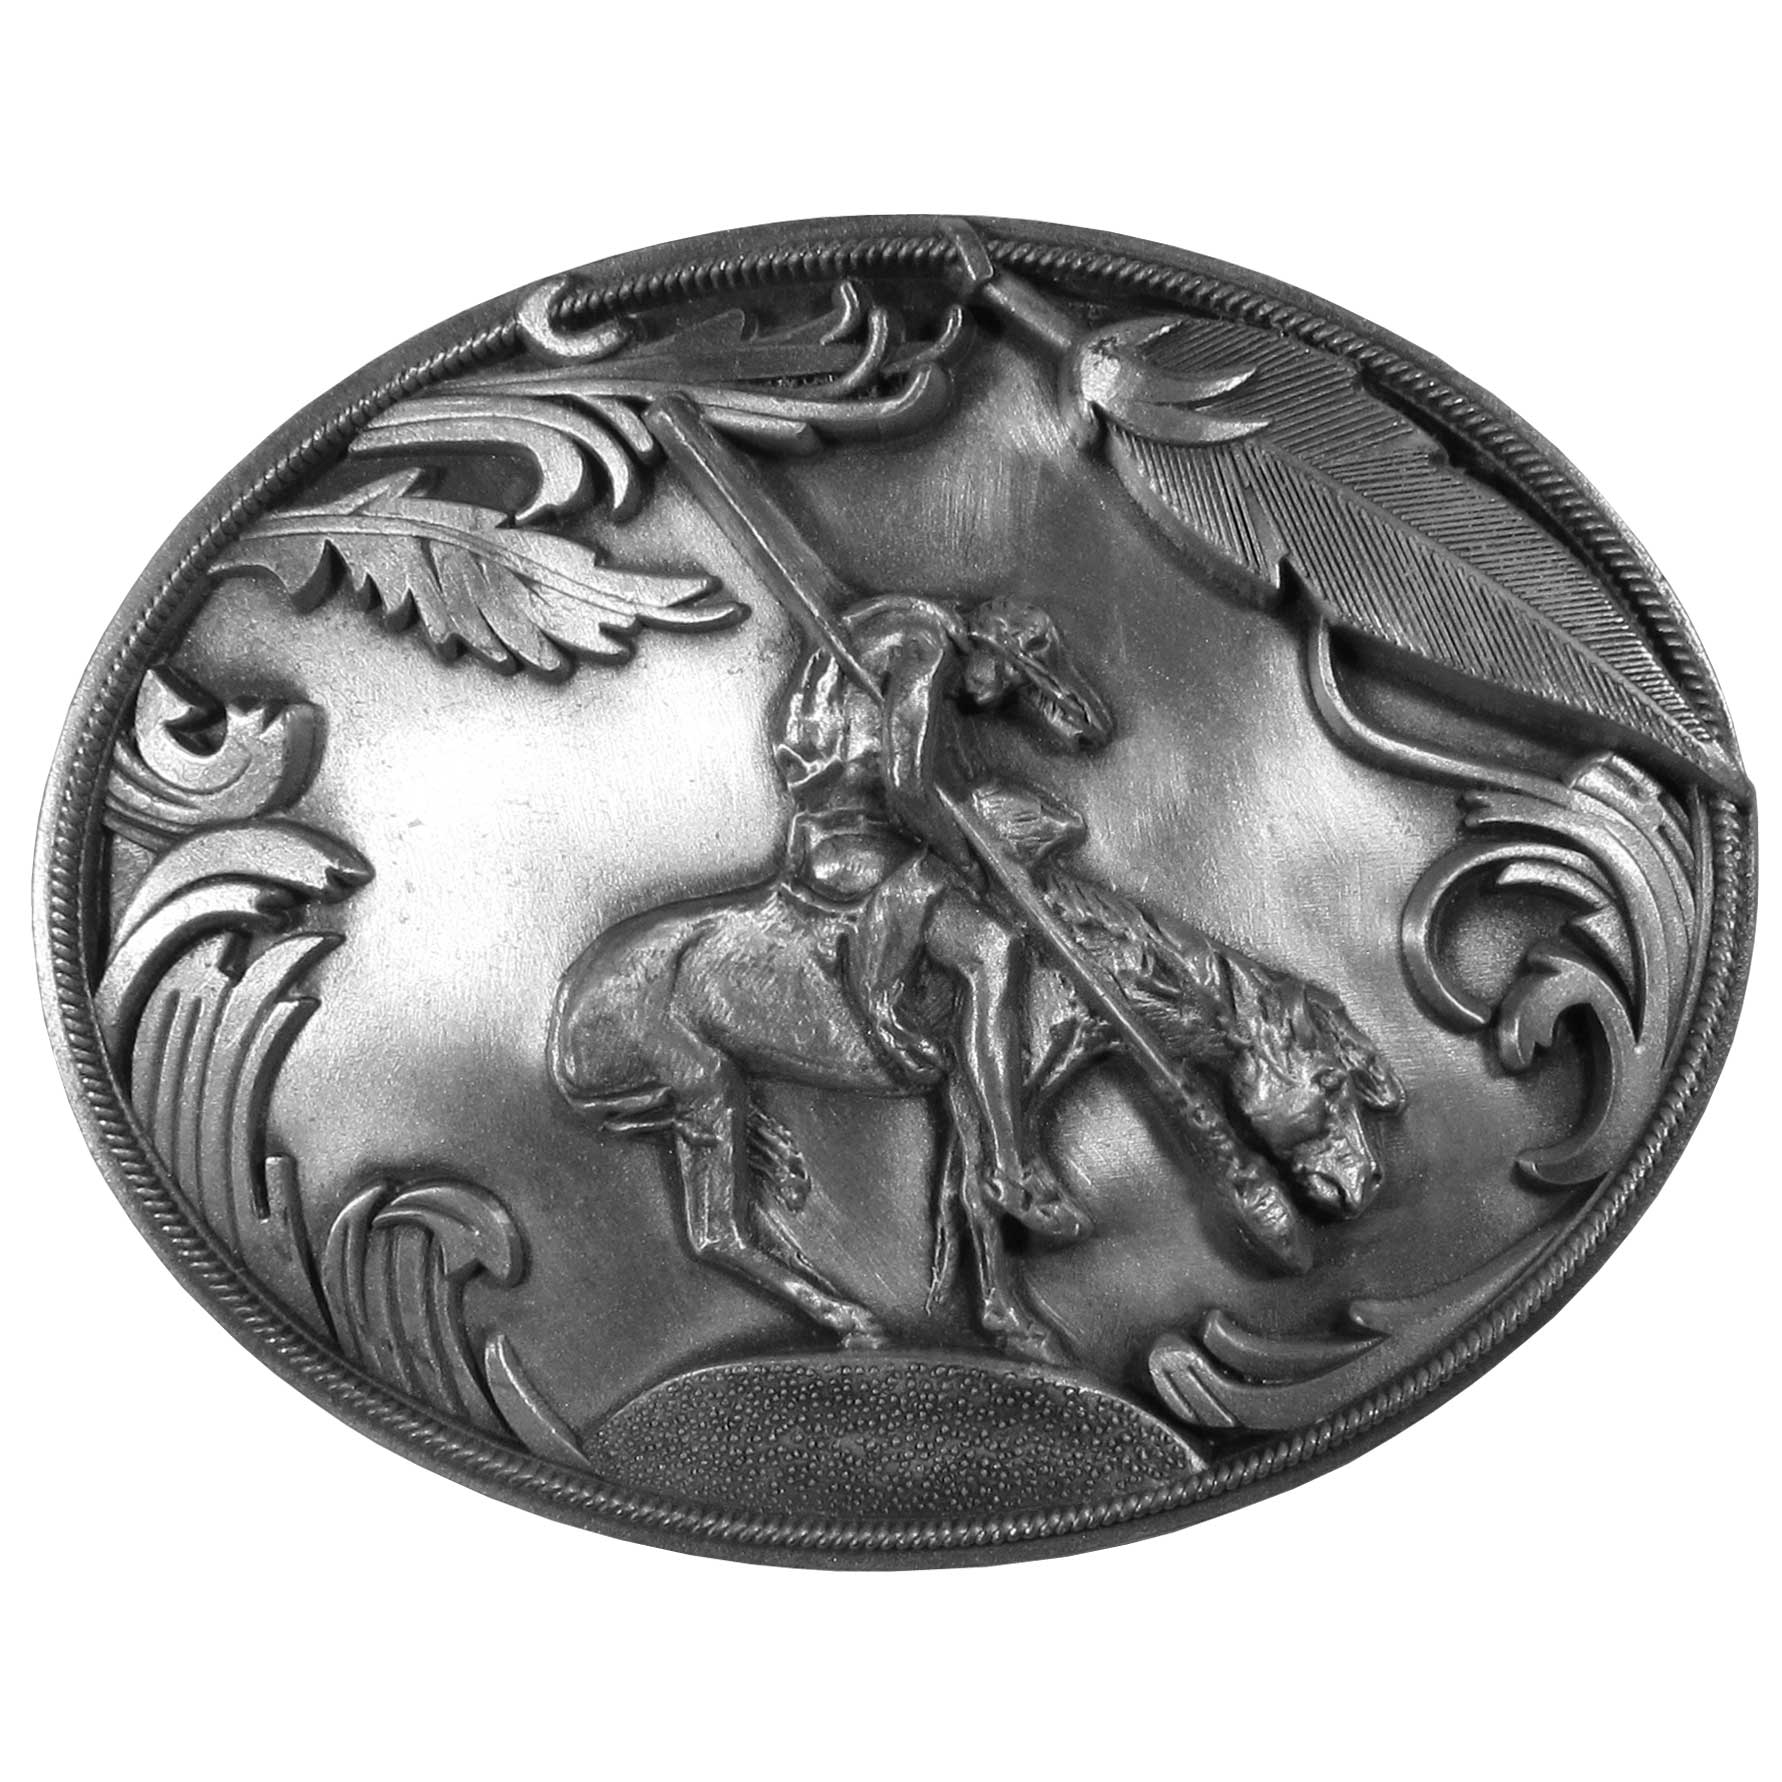 "End of the Trail Antiqued Belt Buckle - ""End of the Trail buckle depicts an American Indian brave hanging limp as his horse comes to an abrupt halt just prior to momentum carrying him over an unseen precipice.  This exquisitely carved buckle is made of fully cast metal with a standard bale that fits up to 2"""" belts."""